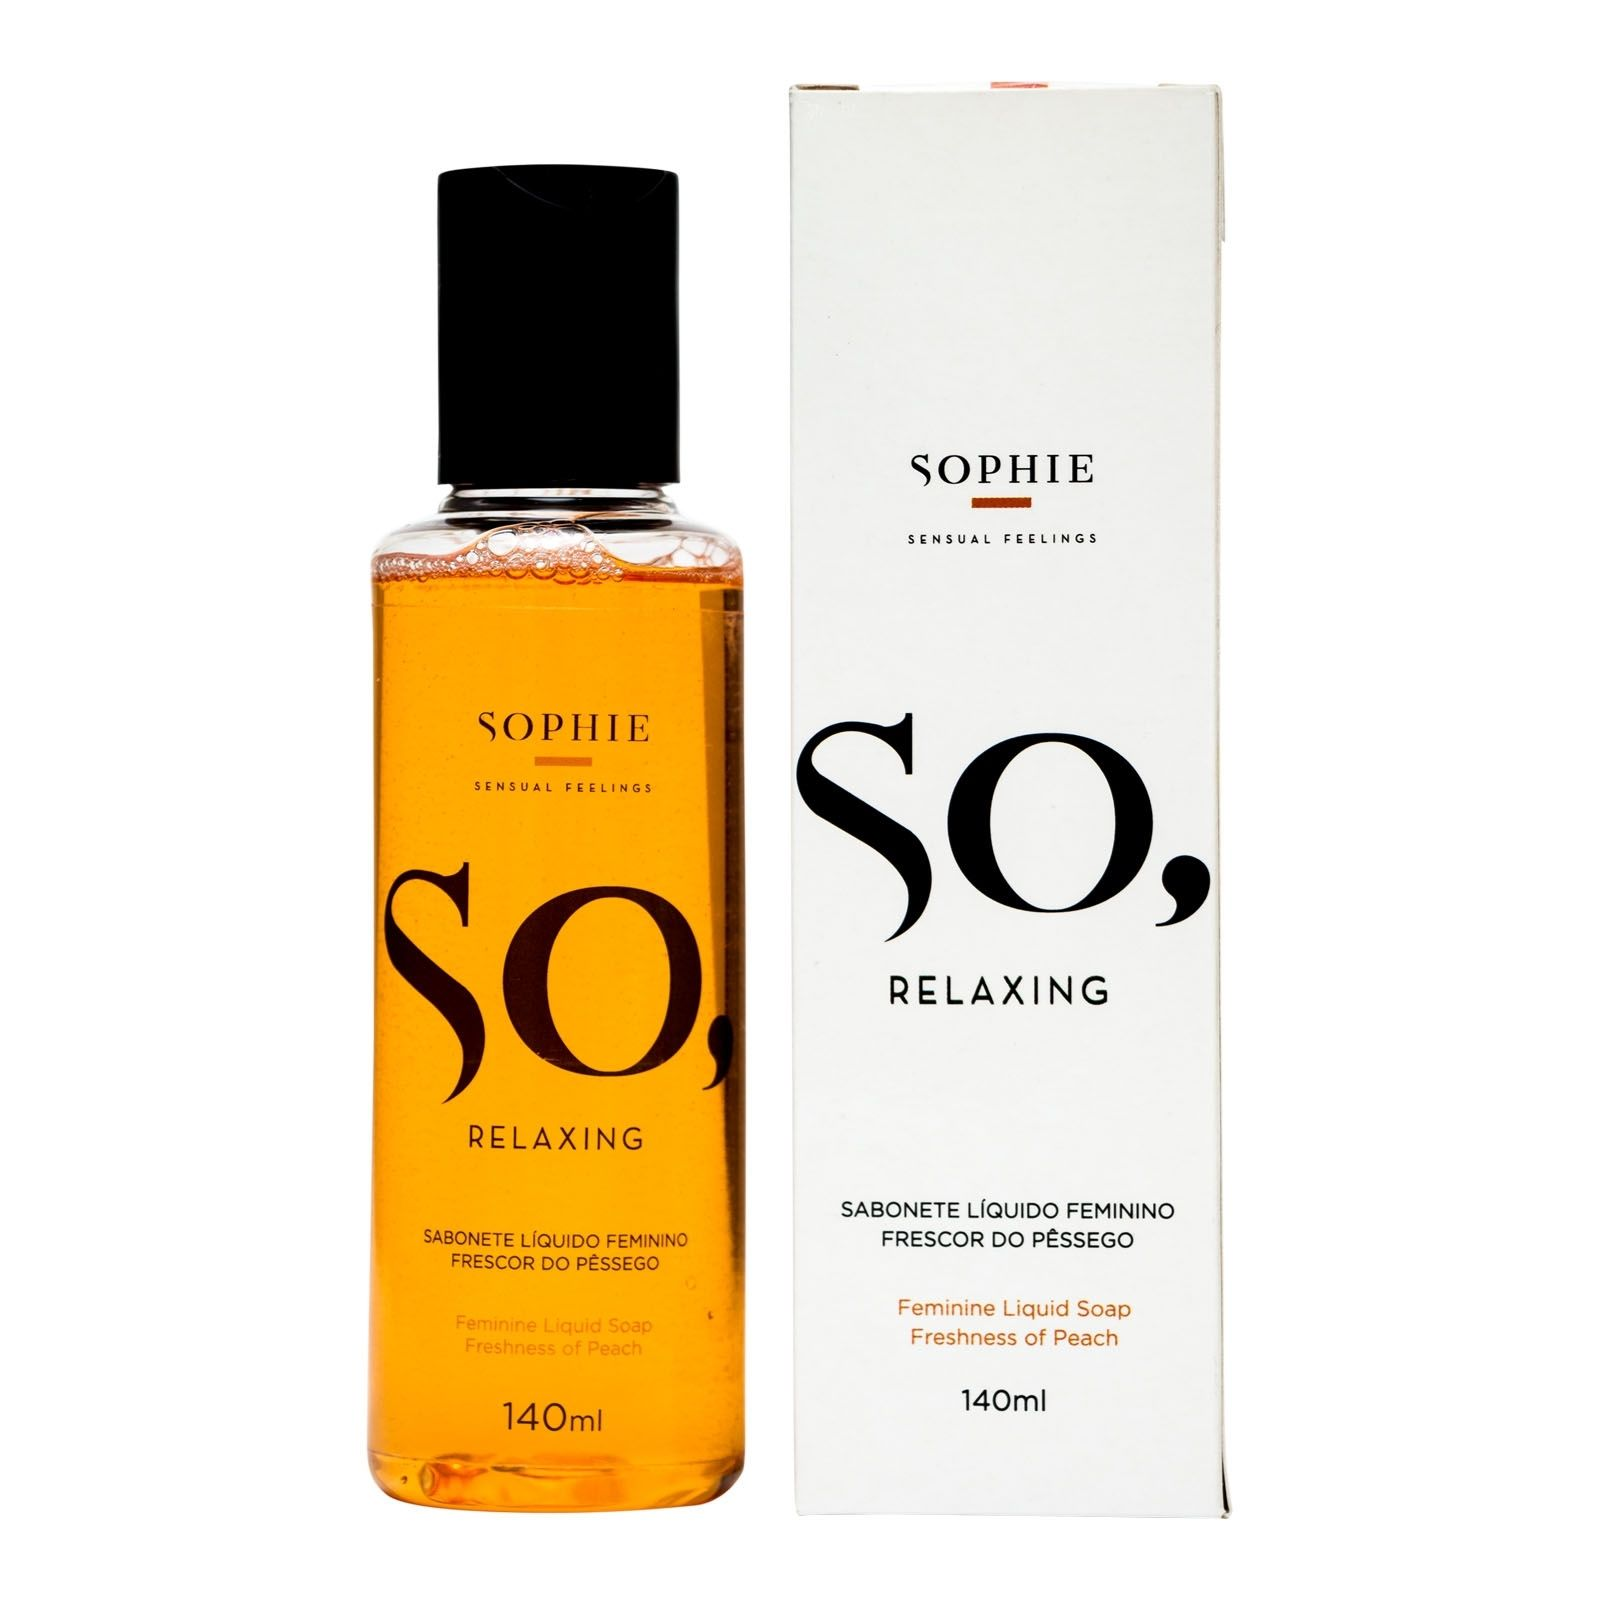 Sabonete Líquido Feminino - So Relaxing 140ml - Sophie